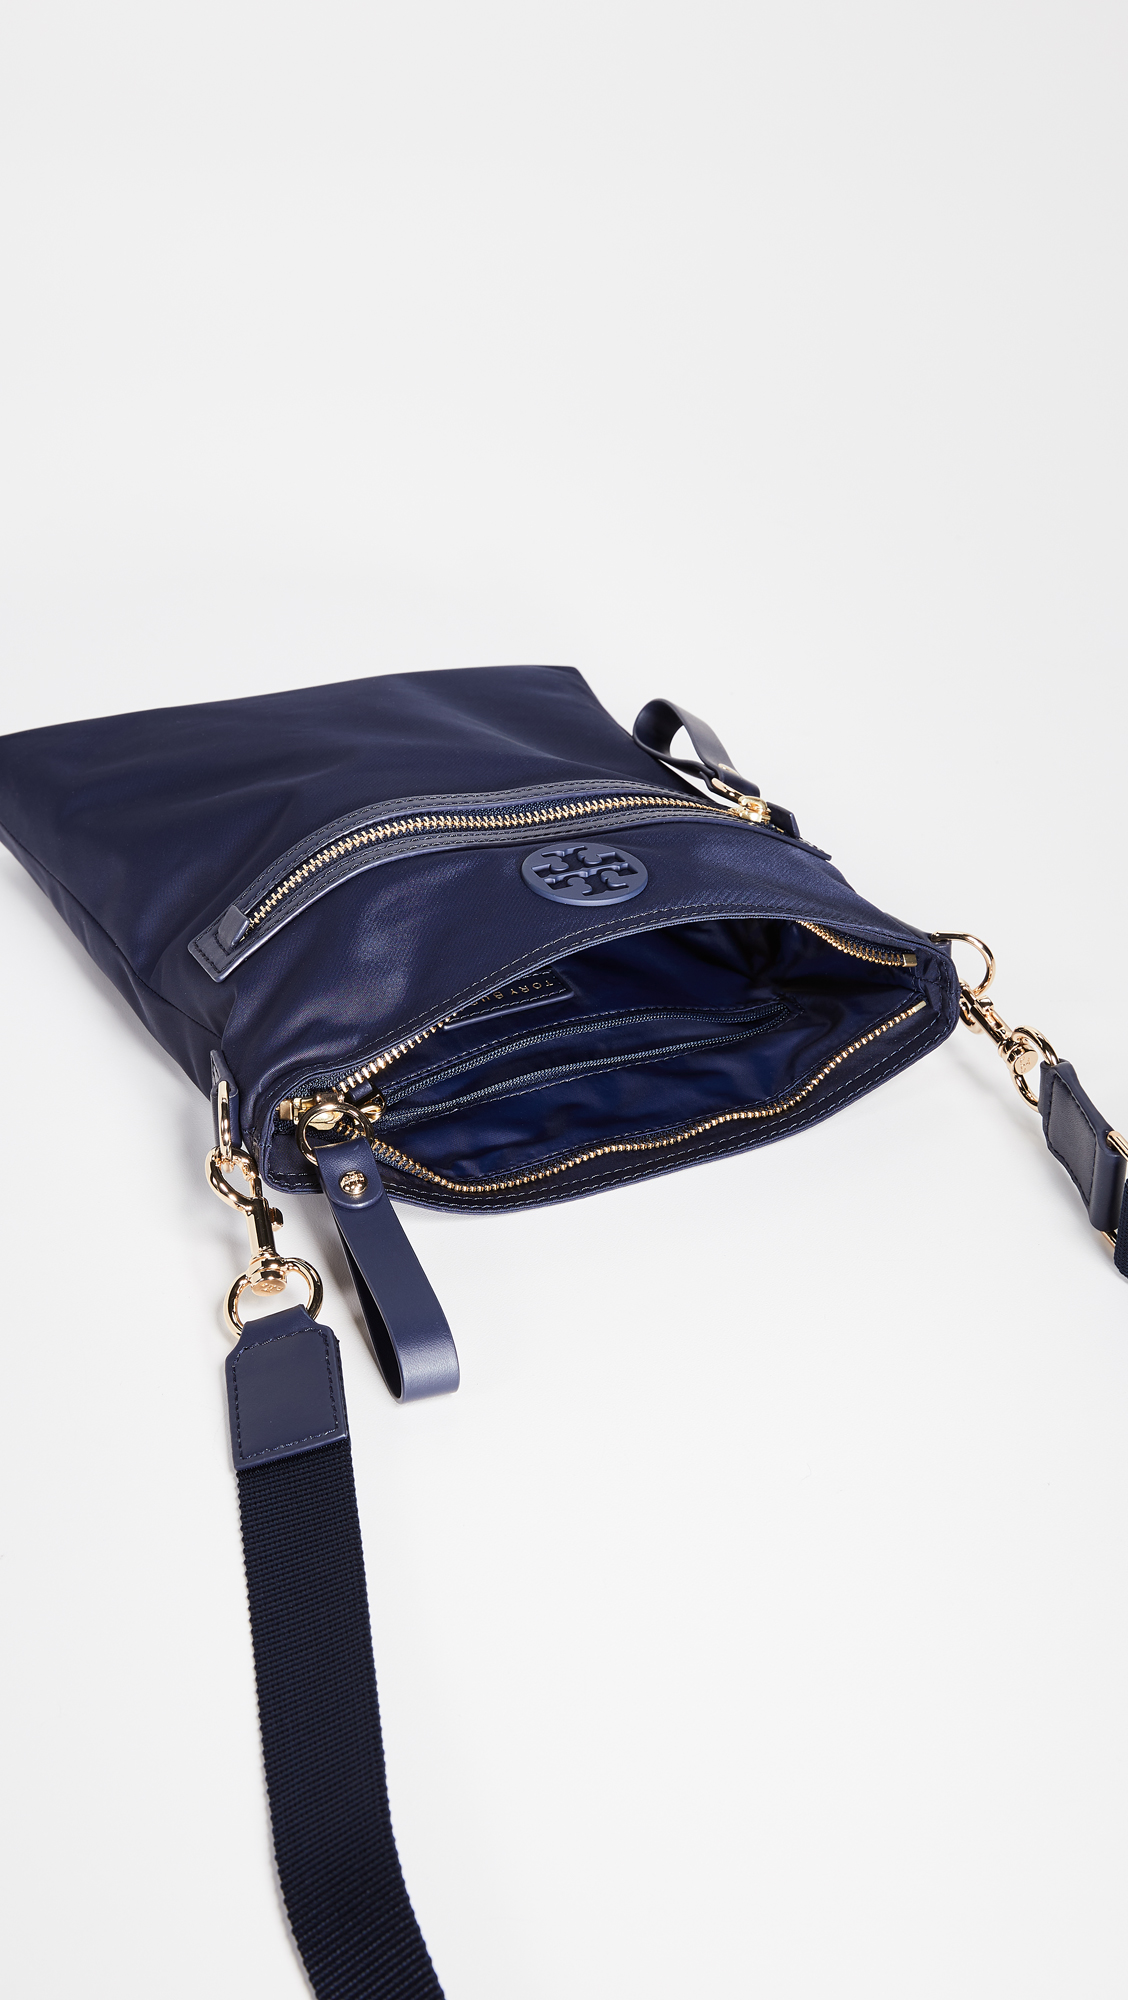 960123e8313 Tory Burch Tilda Nylon Swing Pack